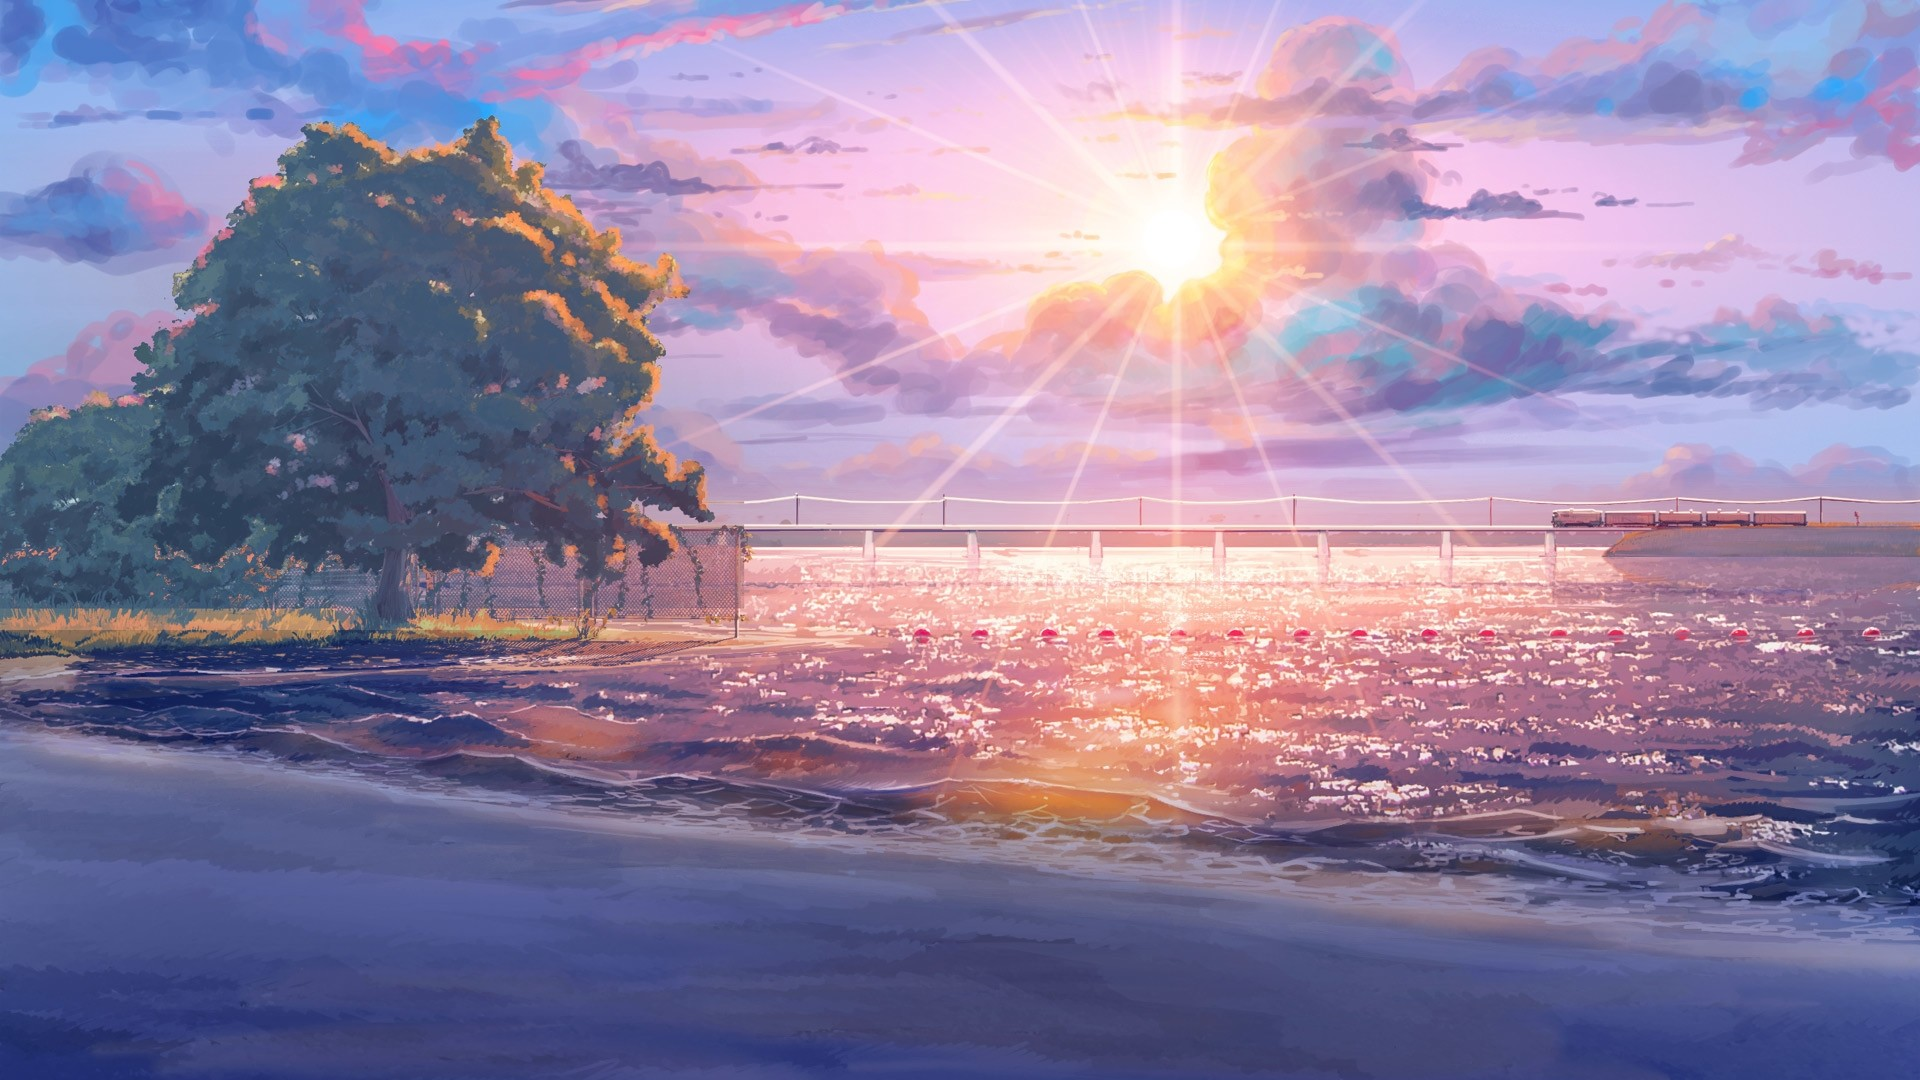 Anime Scenery HD Download